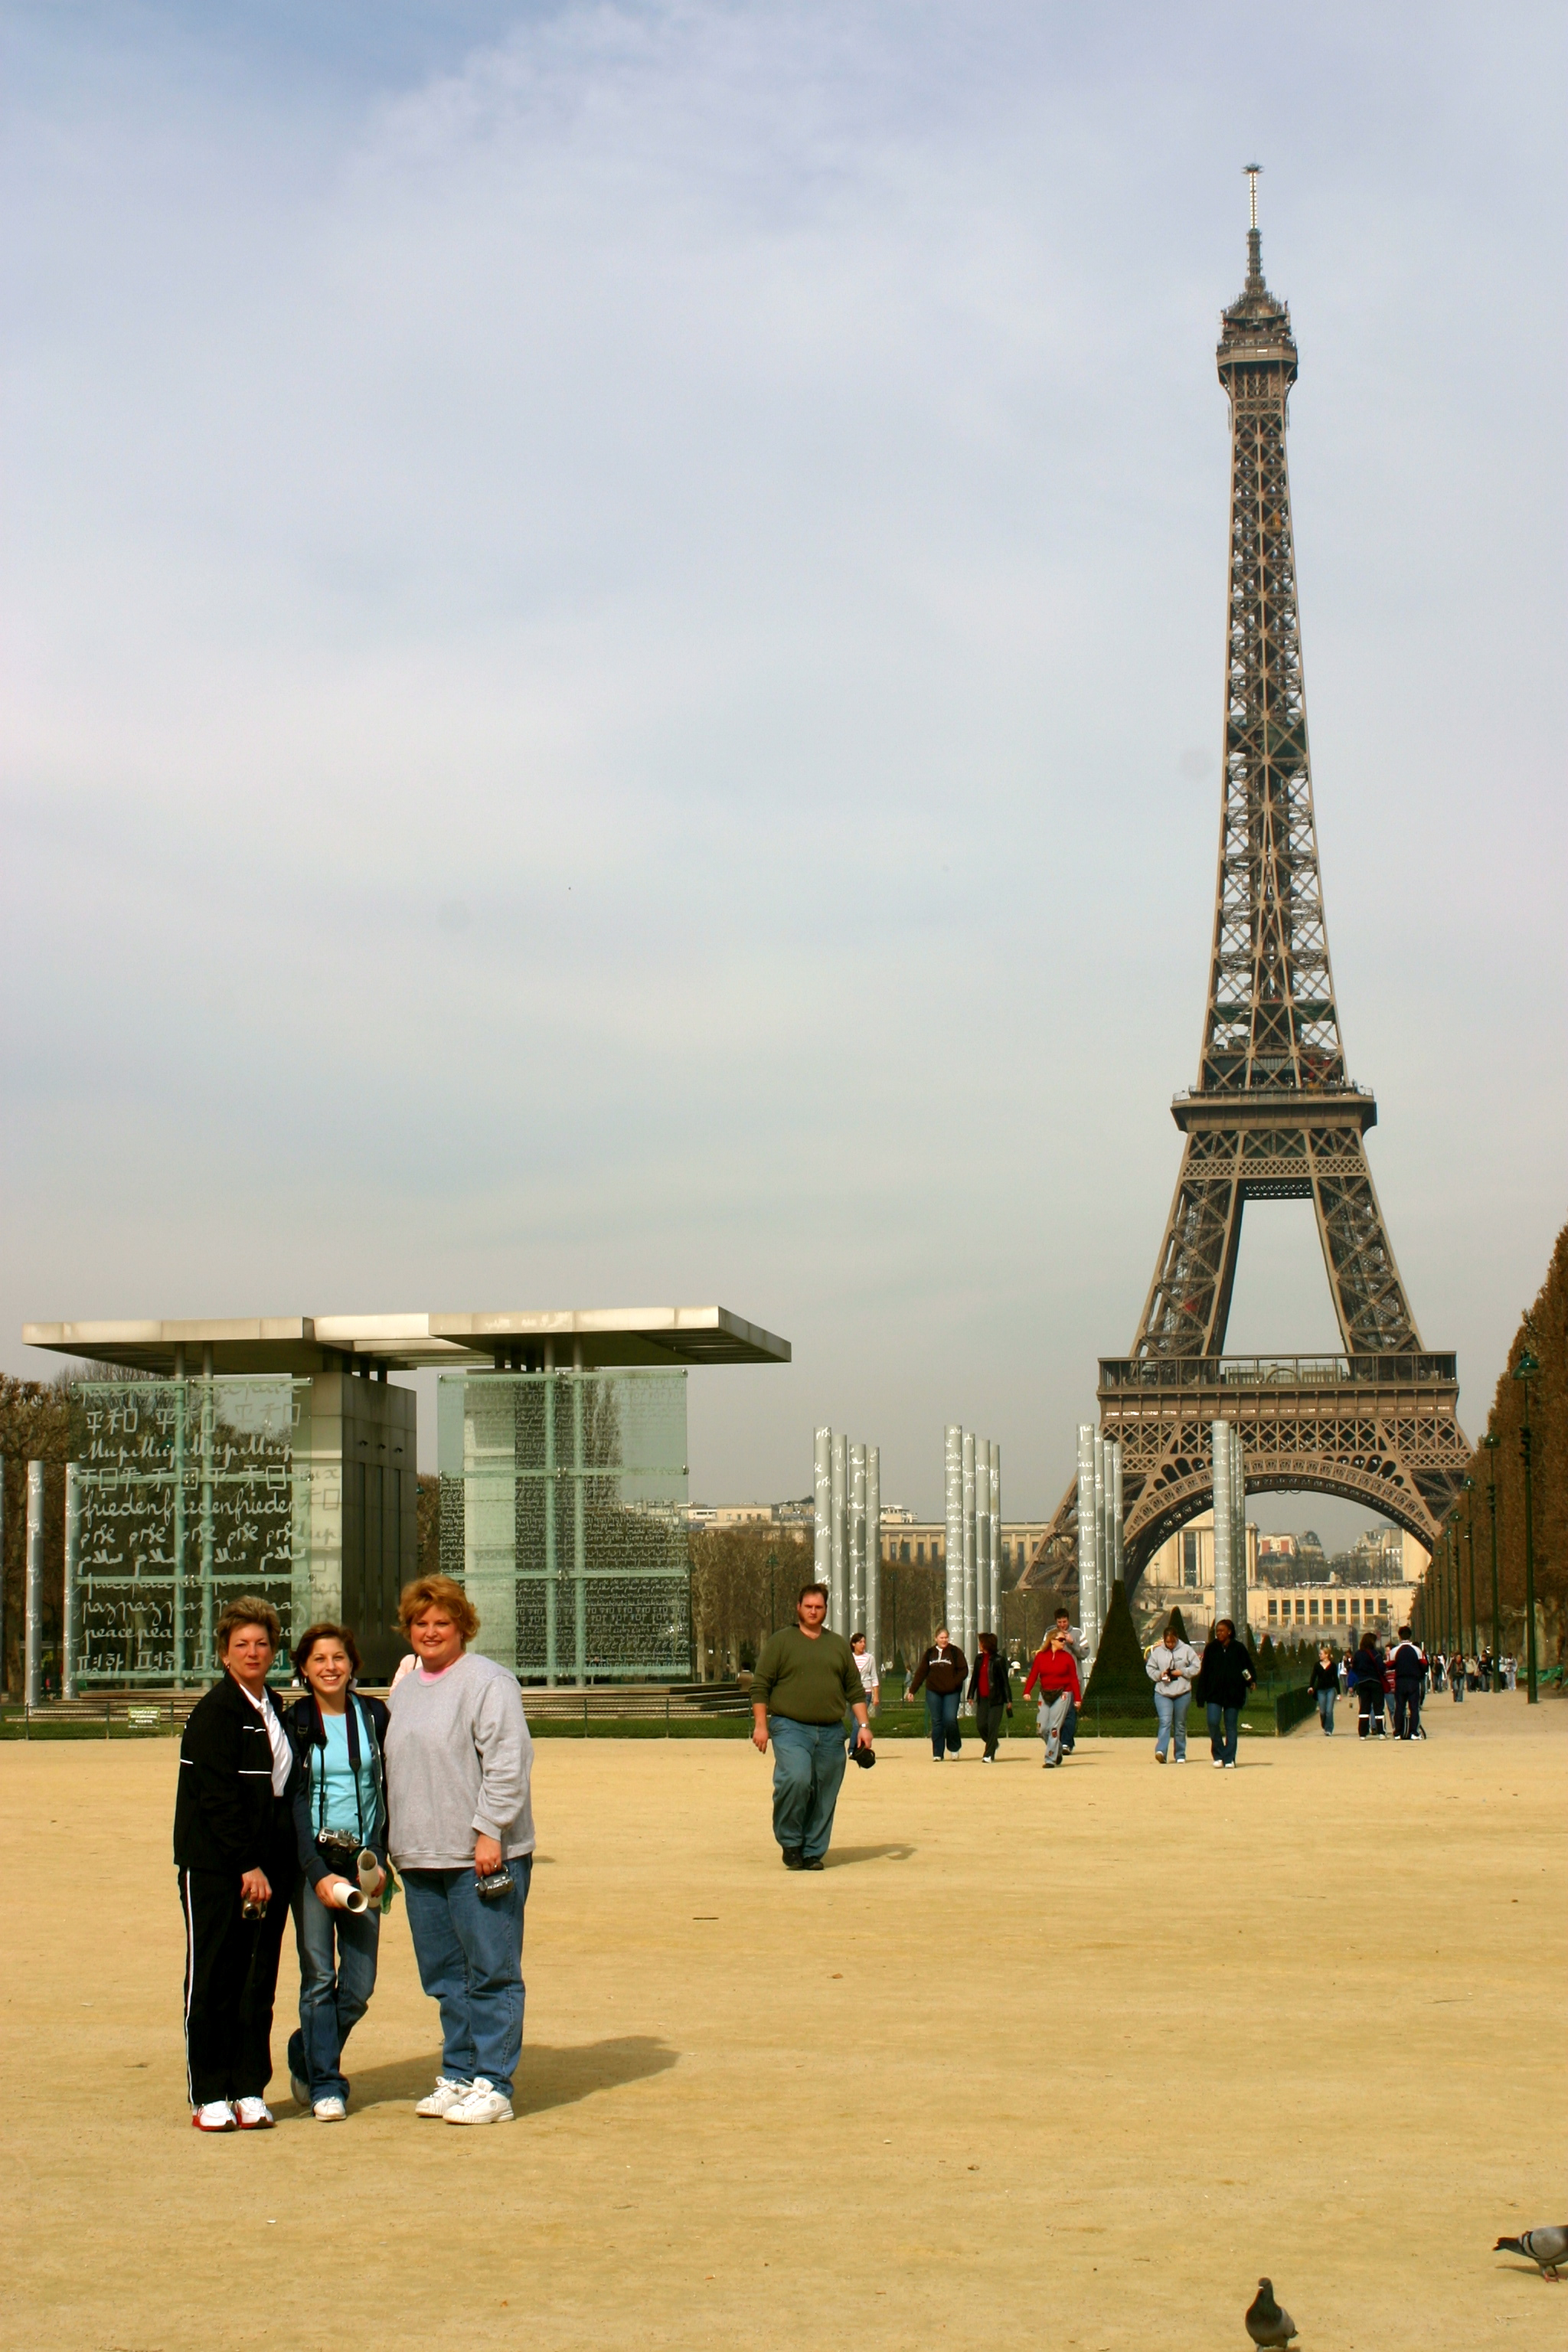 My mom, grandma and me at the Peace Memorial in front of the Eiffel Tower